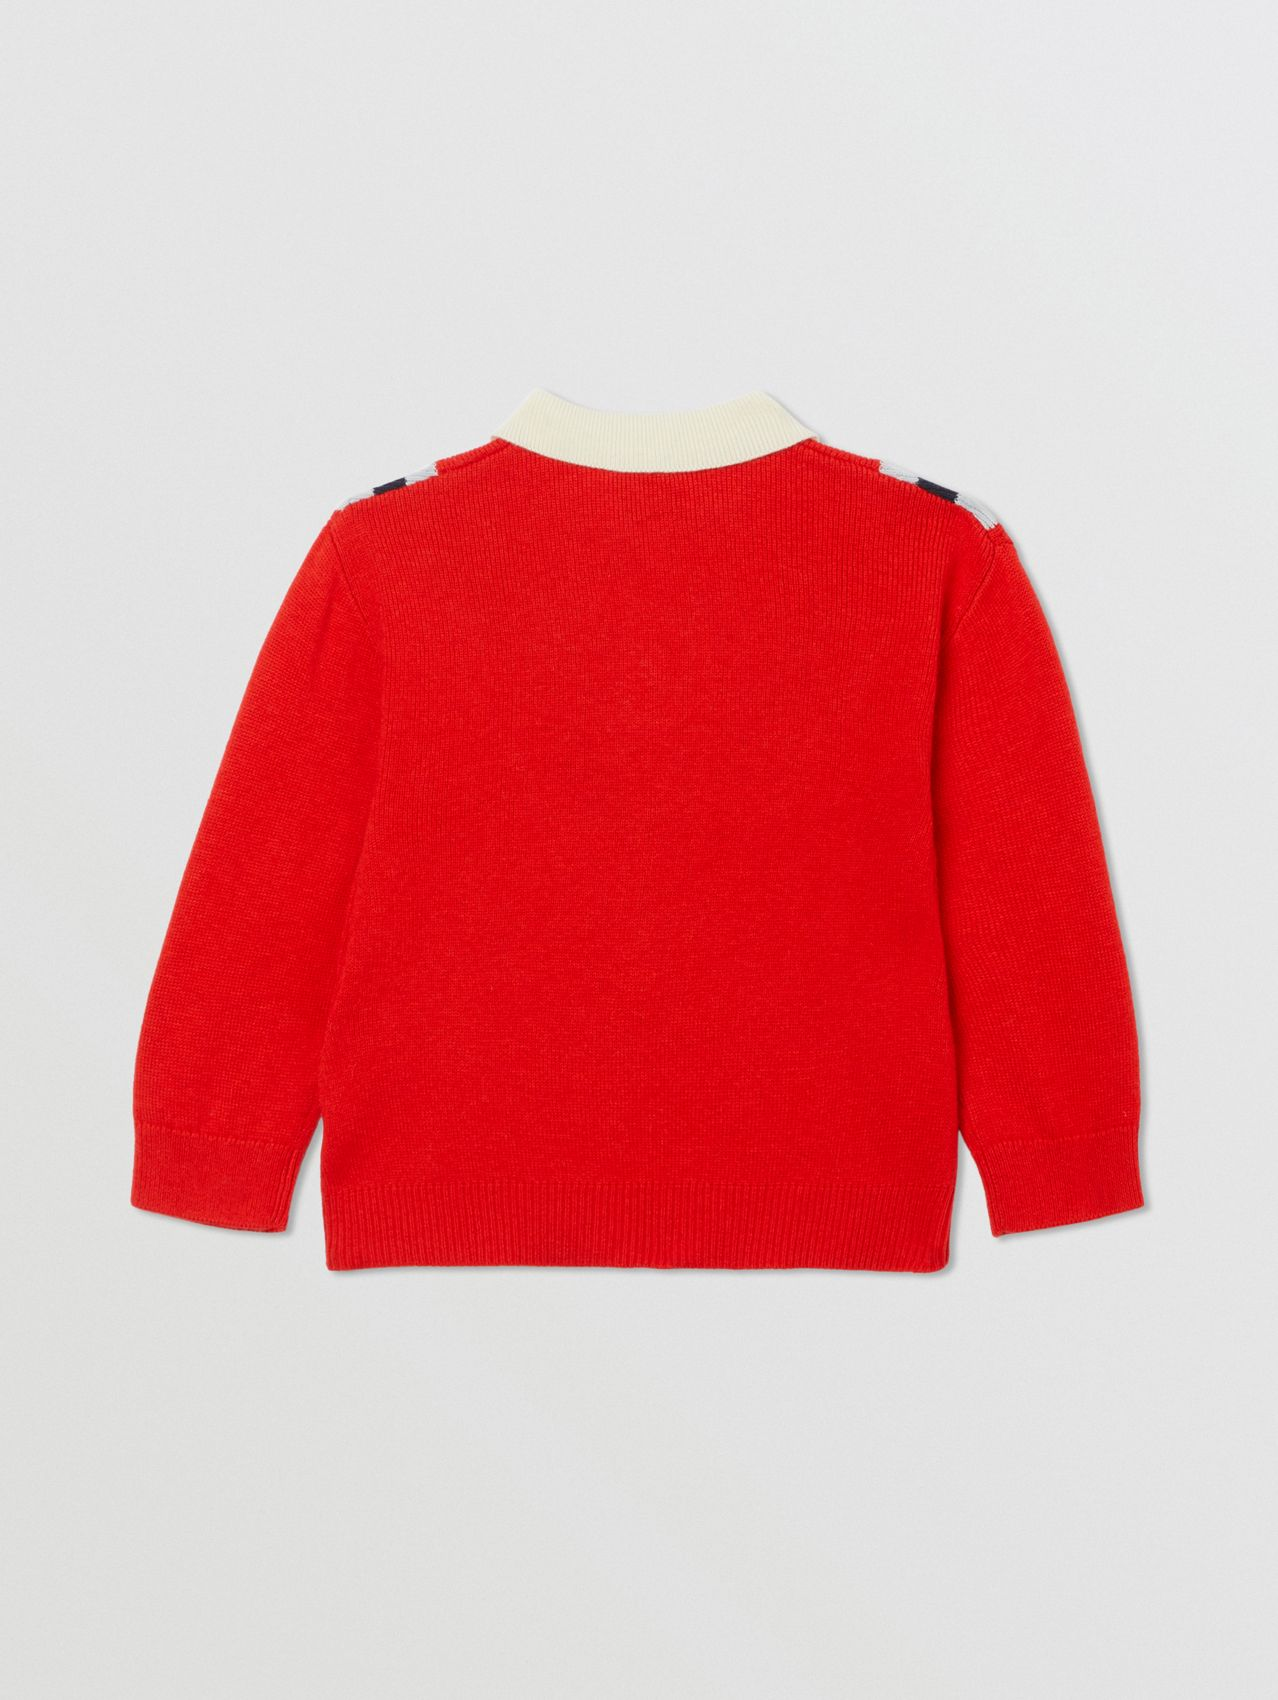 Long-sleeve Knit Cashmere Cotton Polo Shirt in Bright Red